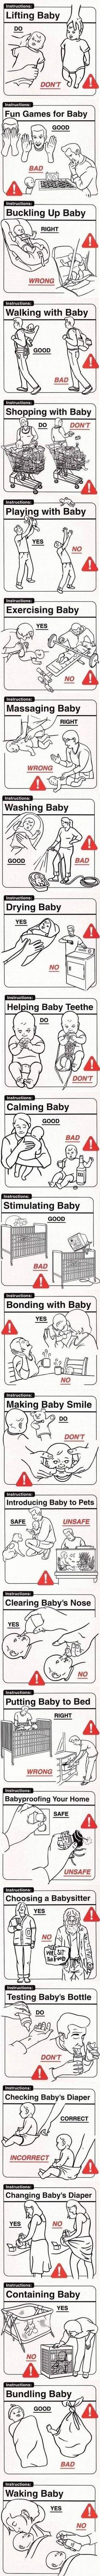 Baby care ;)